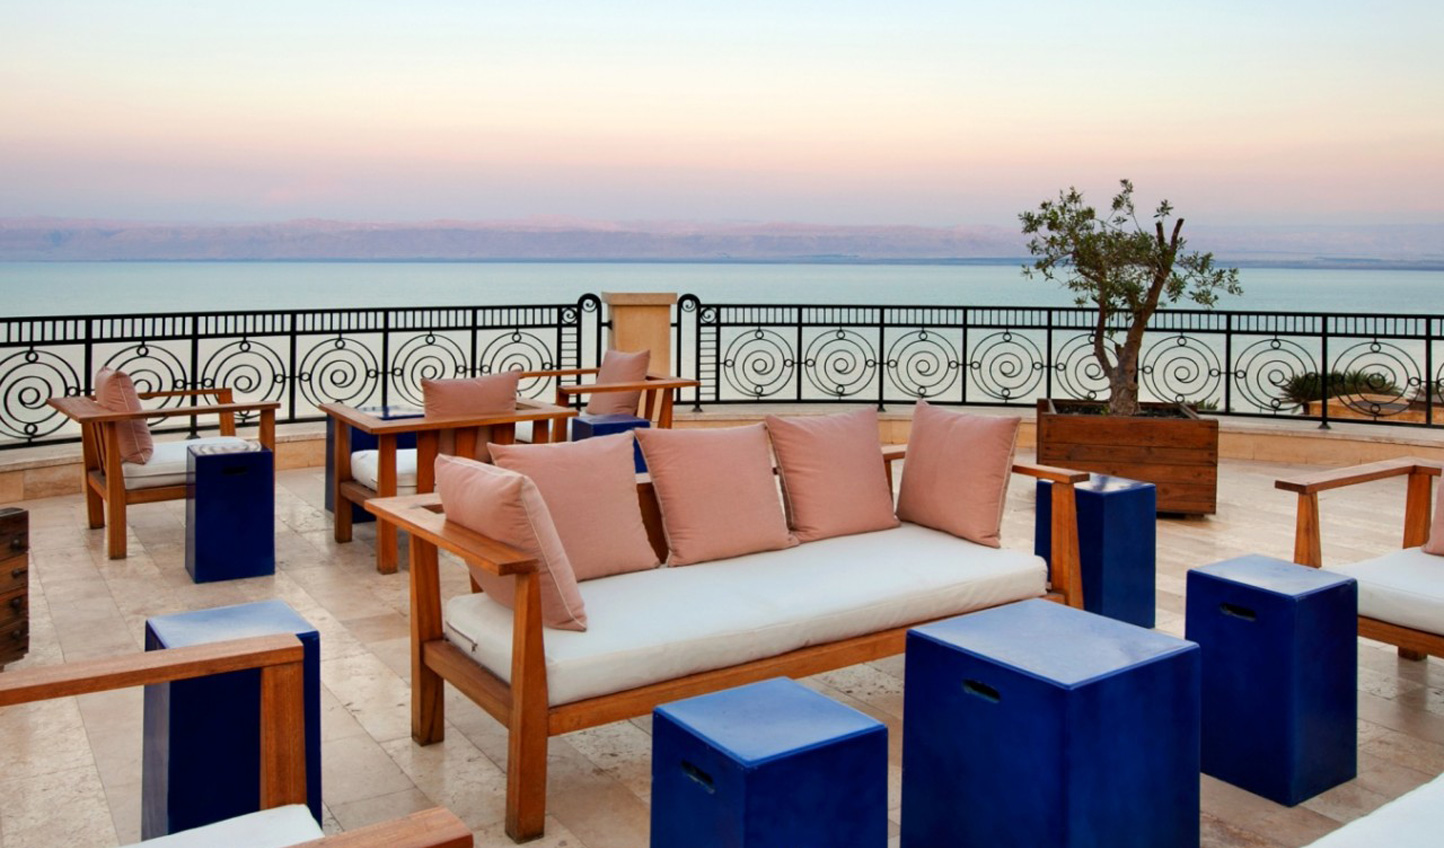 Catch the sunset from your private terrace